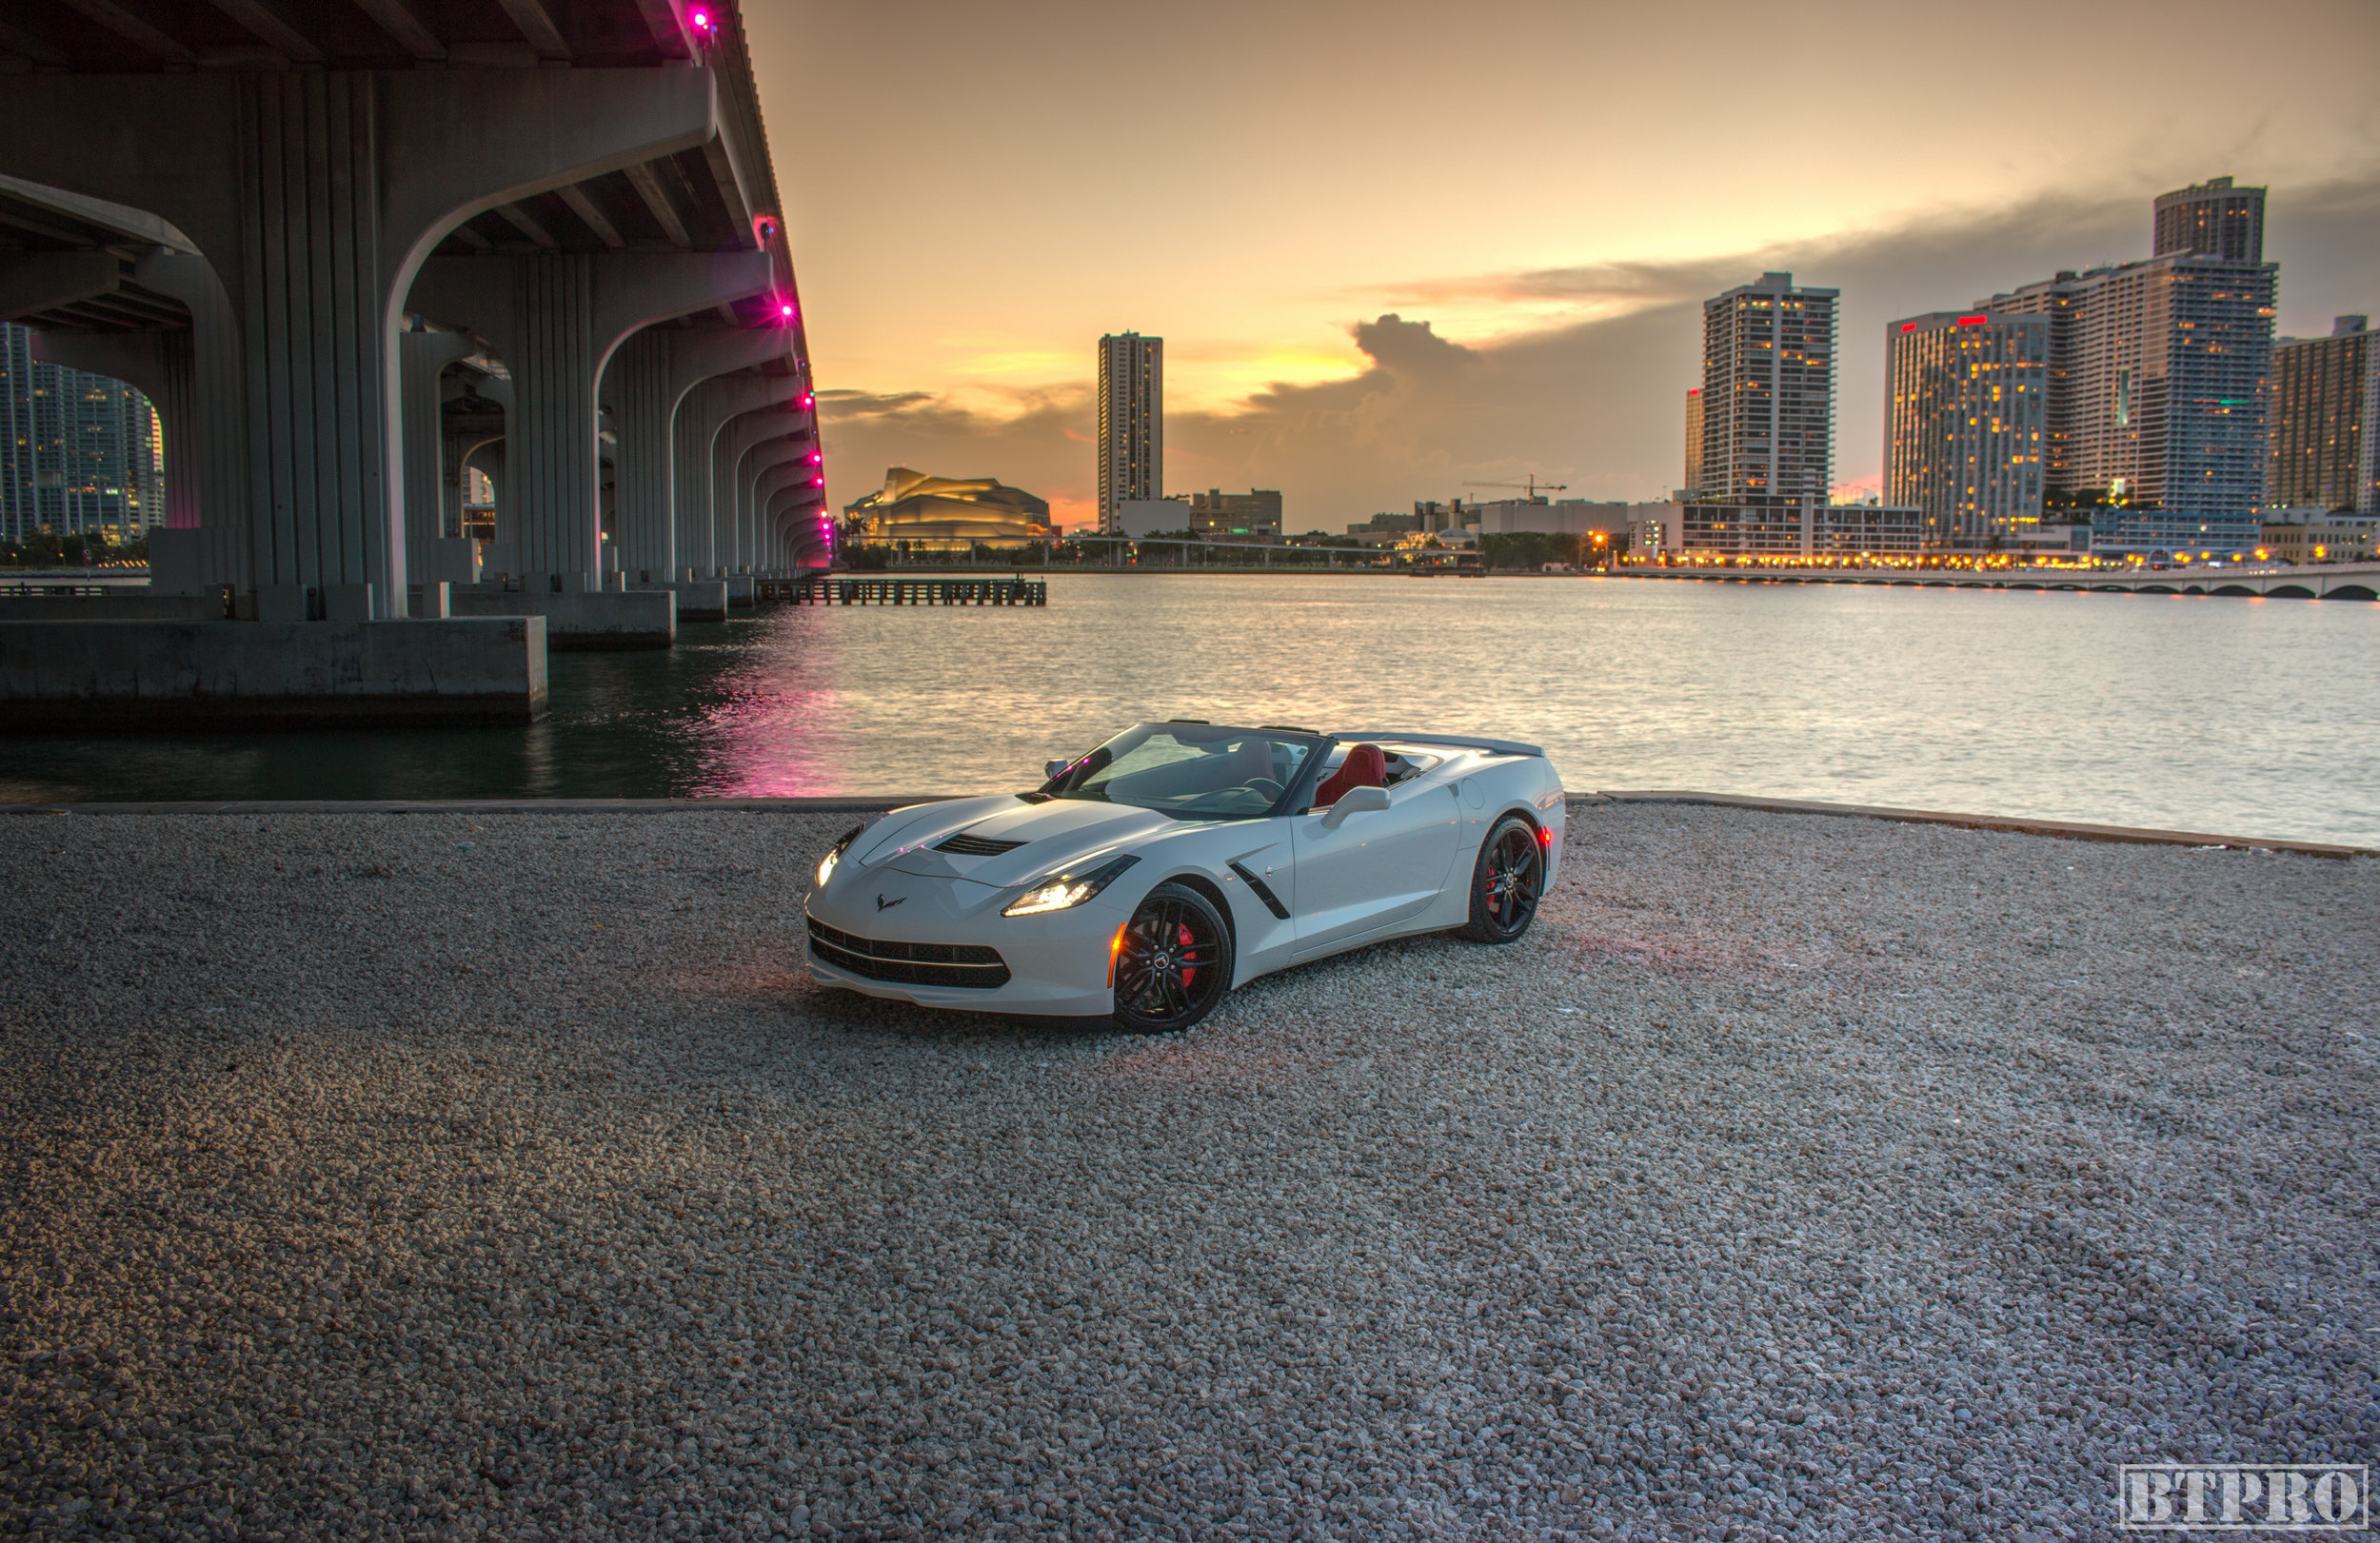 cars, car photo, car photography, chevy, checvrolet, corvette, vette, commercial photography, miami, miami photographers